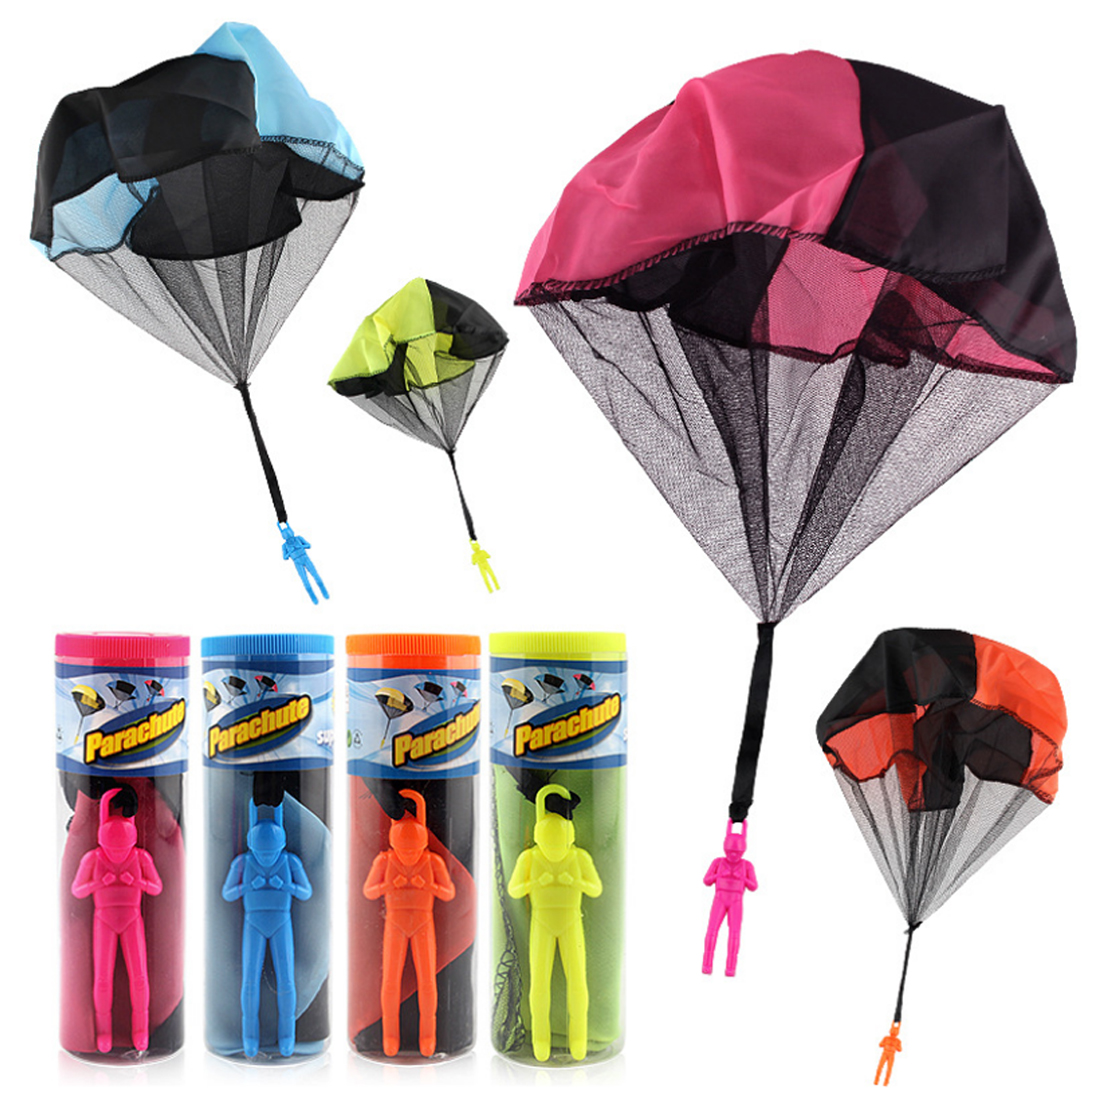 Mini Hand Throwing Parachute Outdoor Sports Fly Kids Toy Playing Soldier Parachute Fun Flying Educational Toy for Children